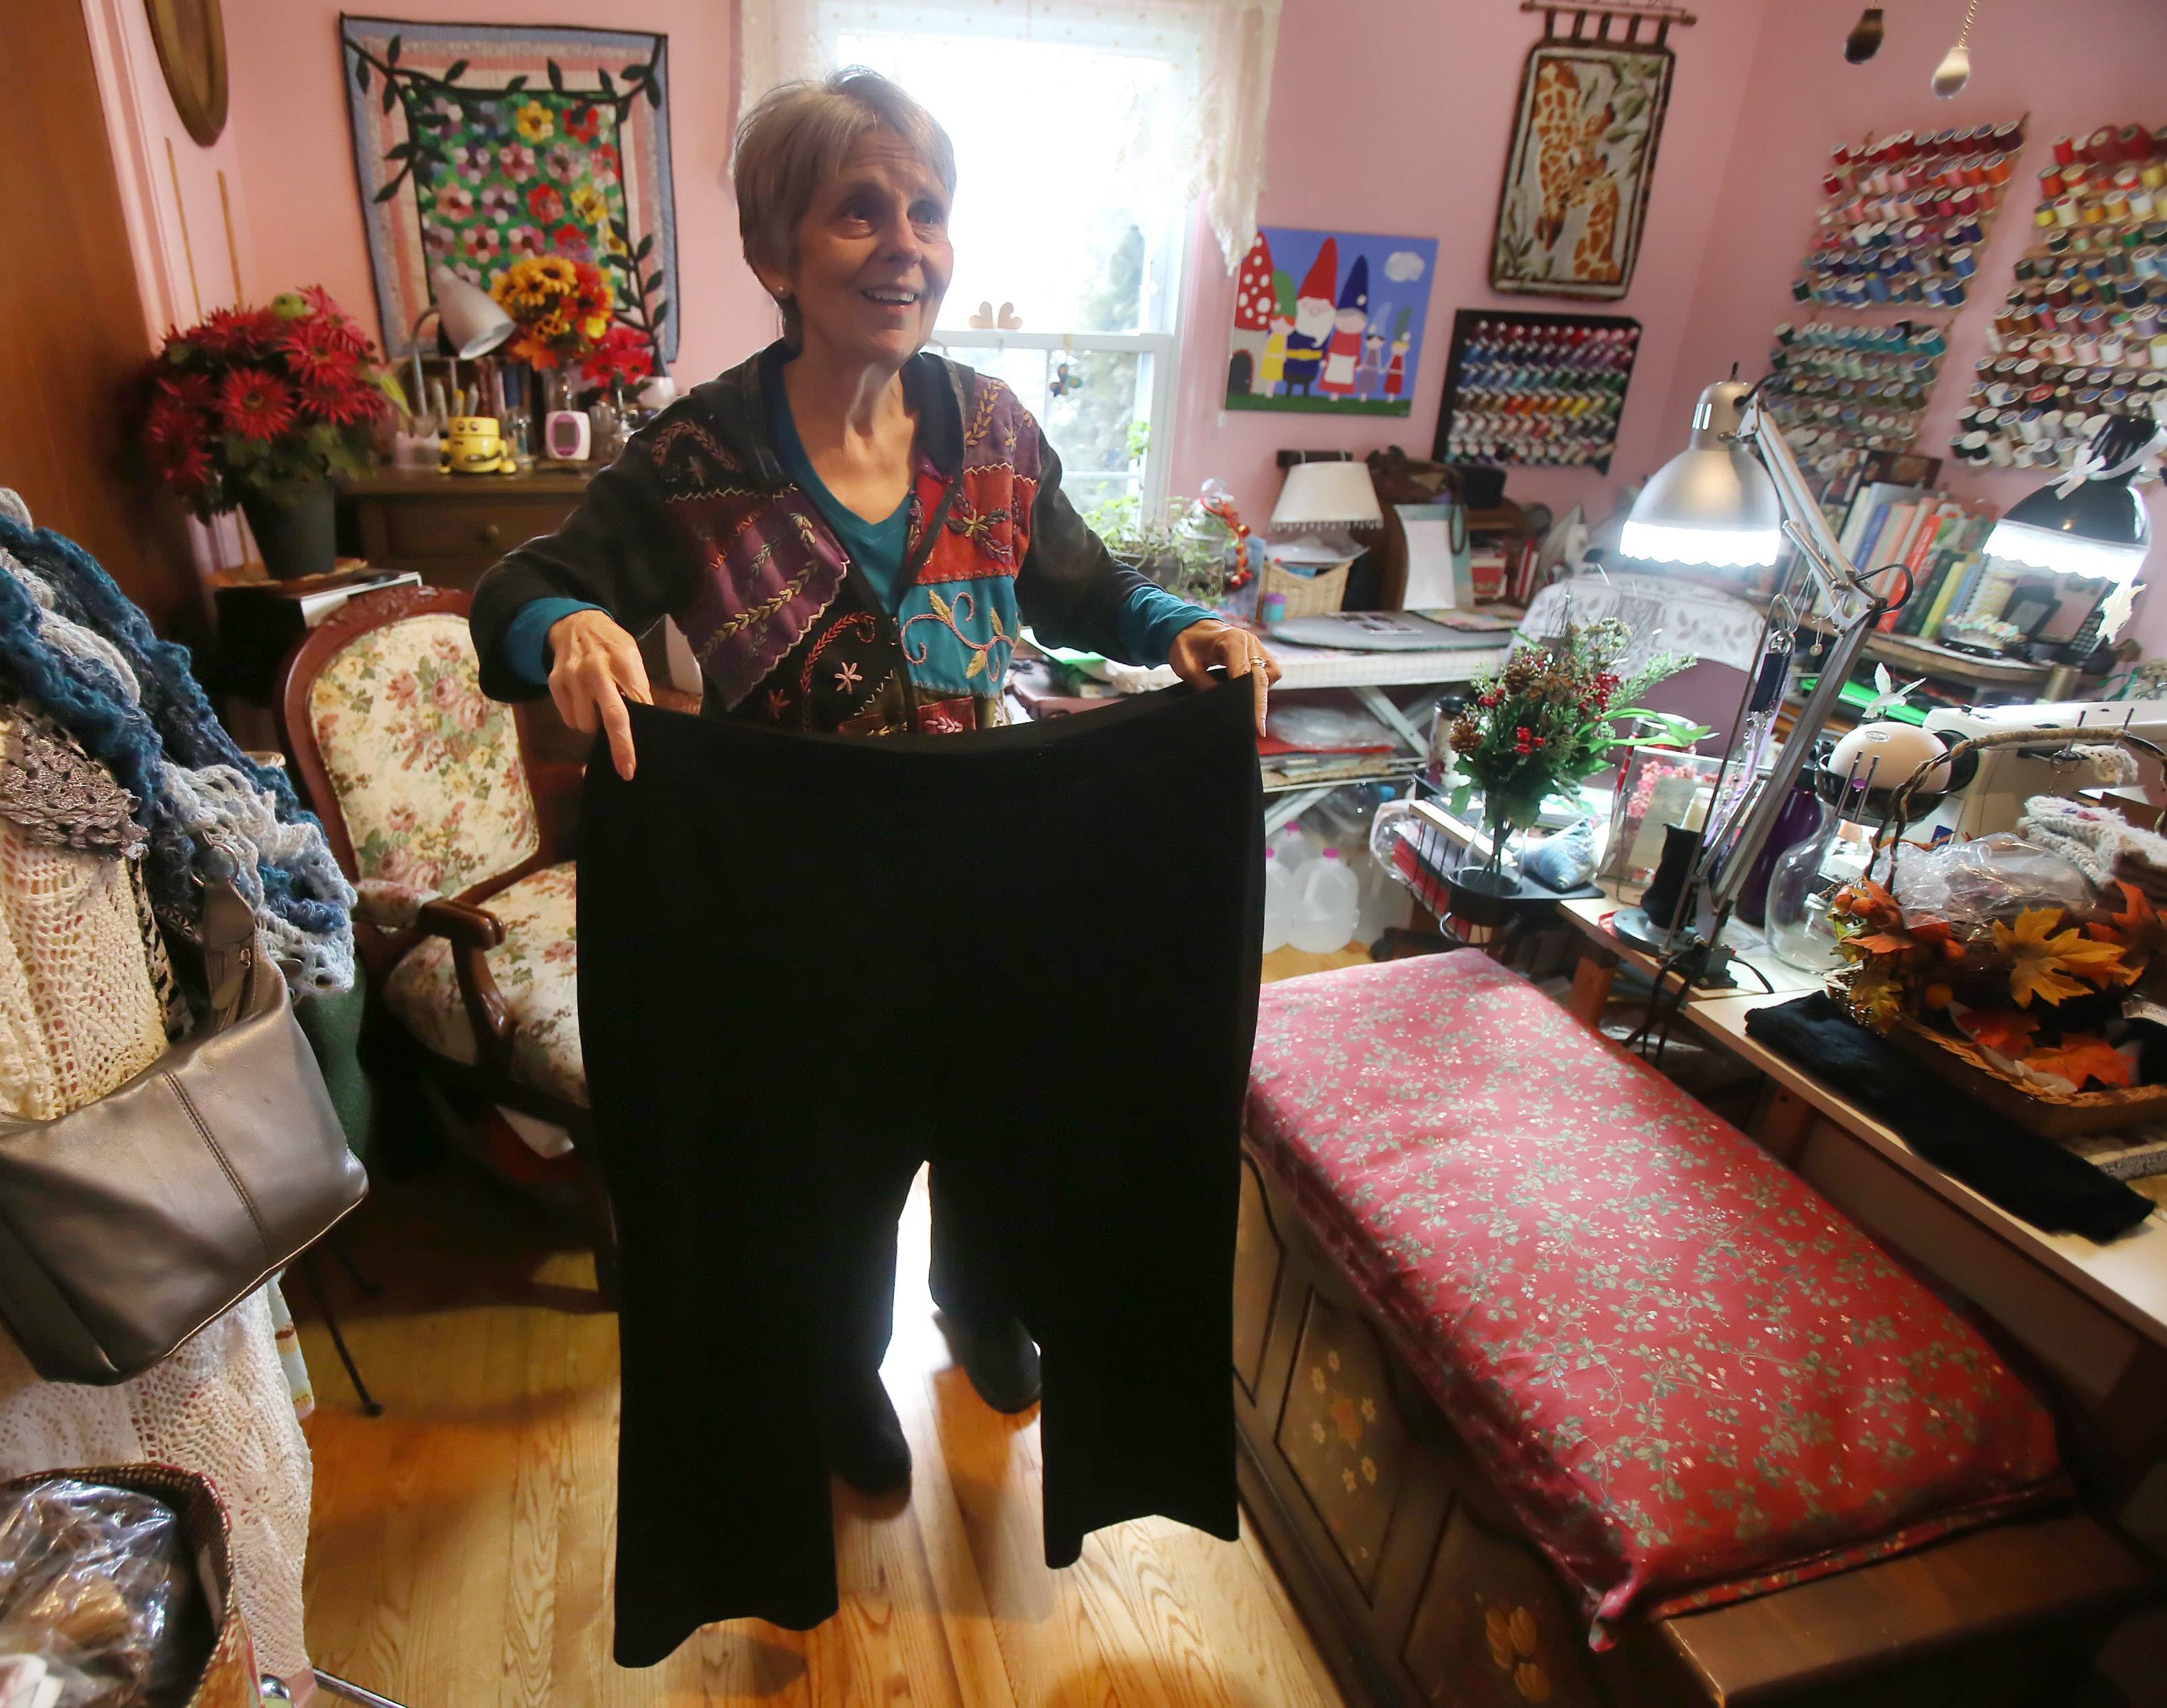 This old pair of size 30 pants was a wardrobe staple for Jan Wilke before the Grayslake woman found a eating program that worked.